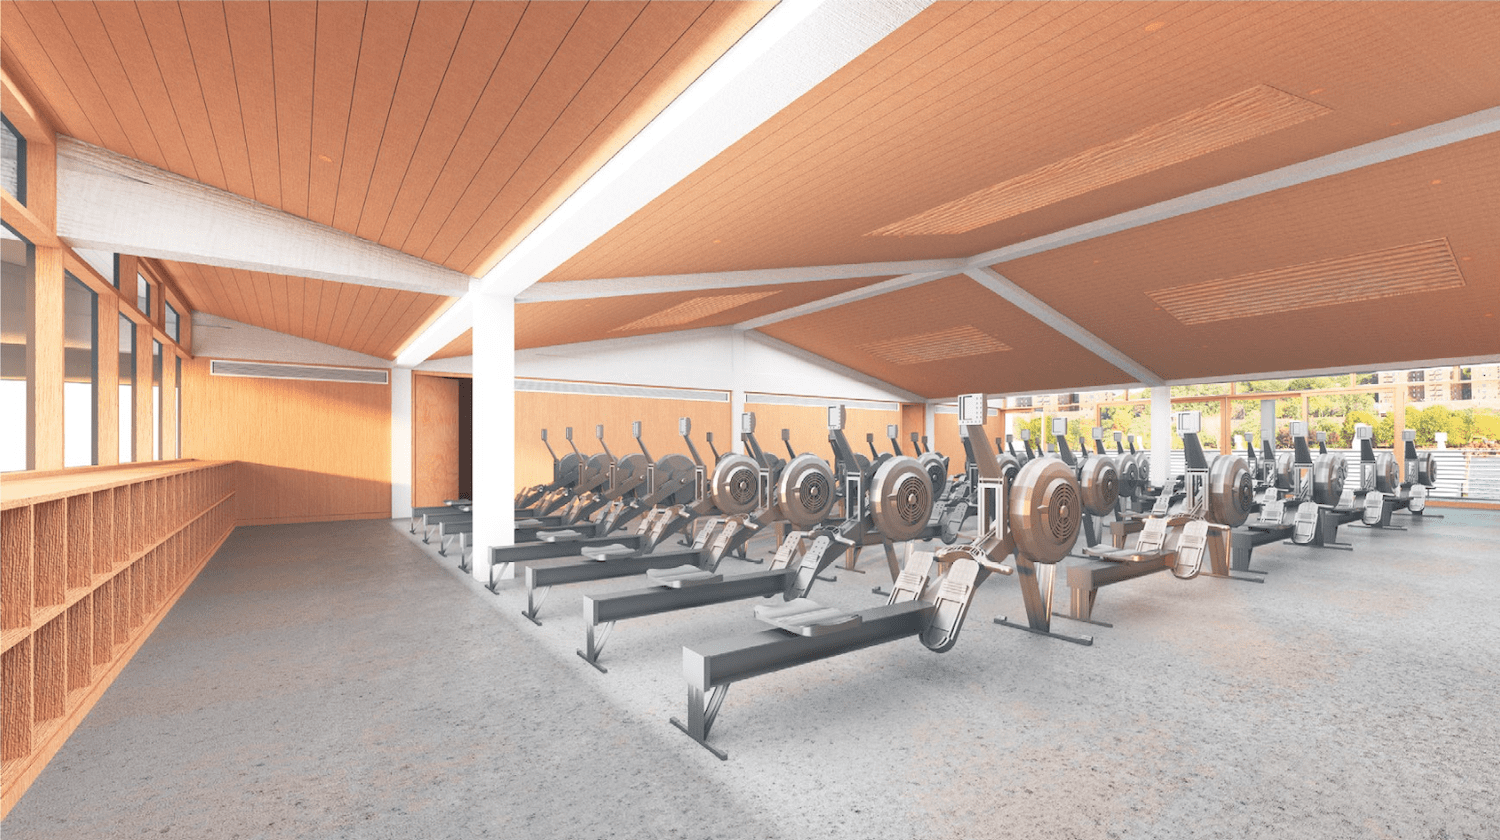 multipurpose room with ergs